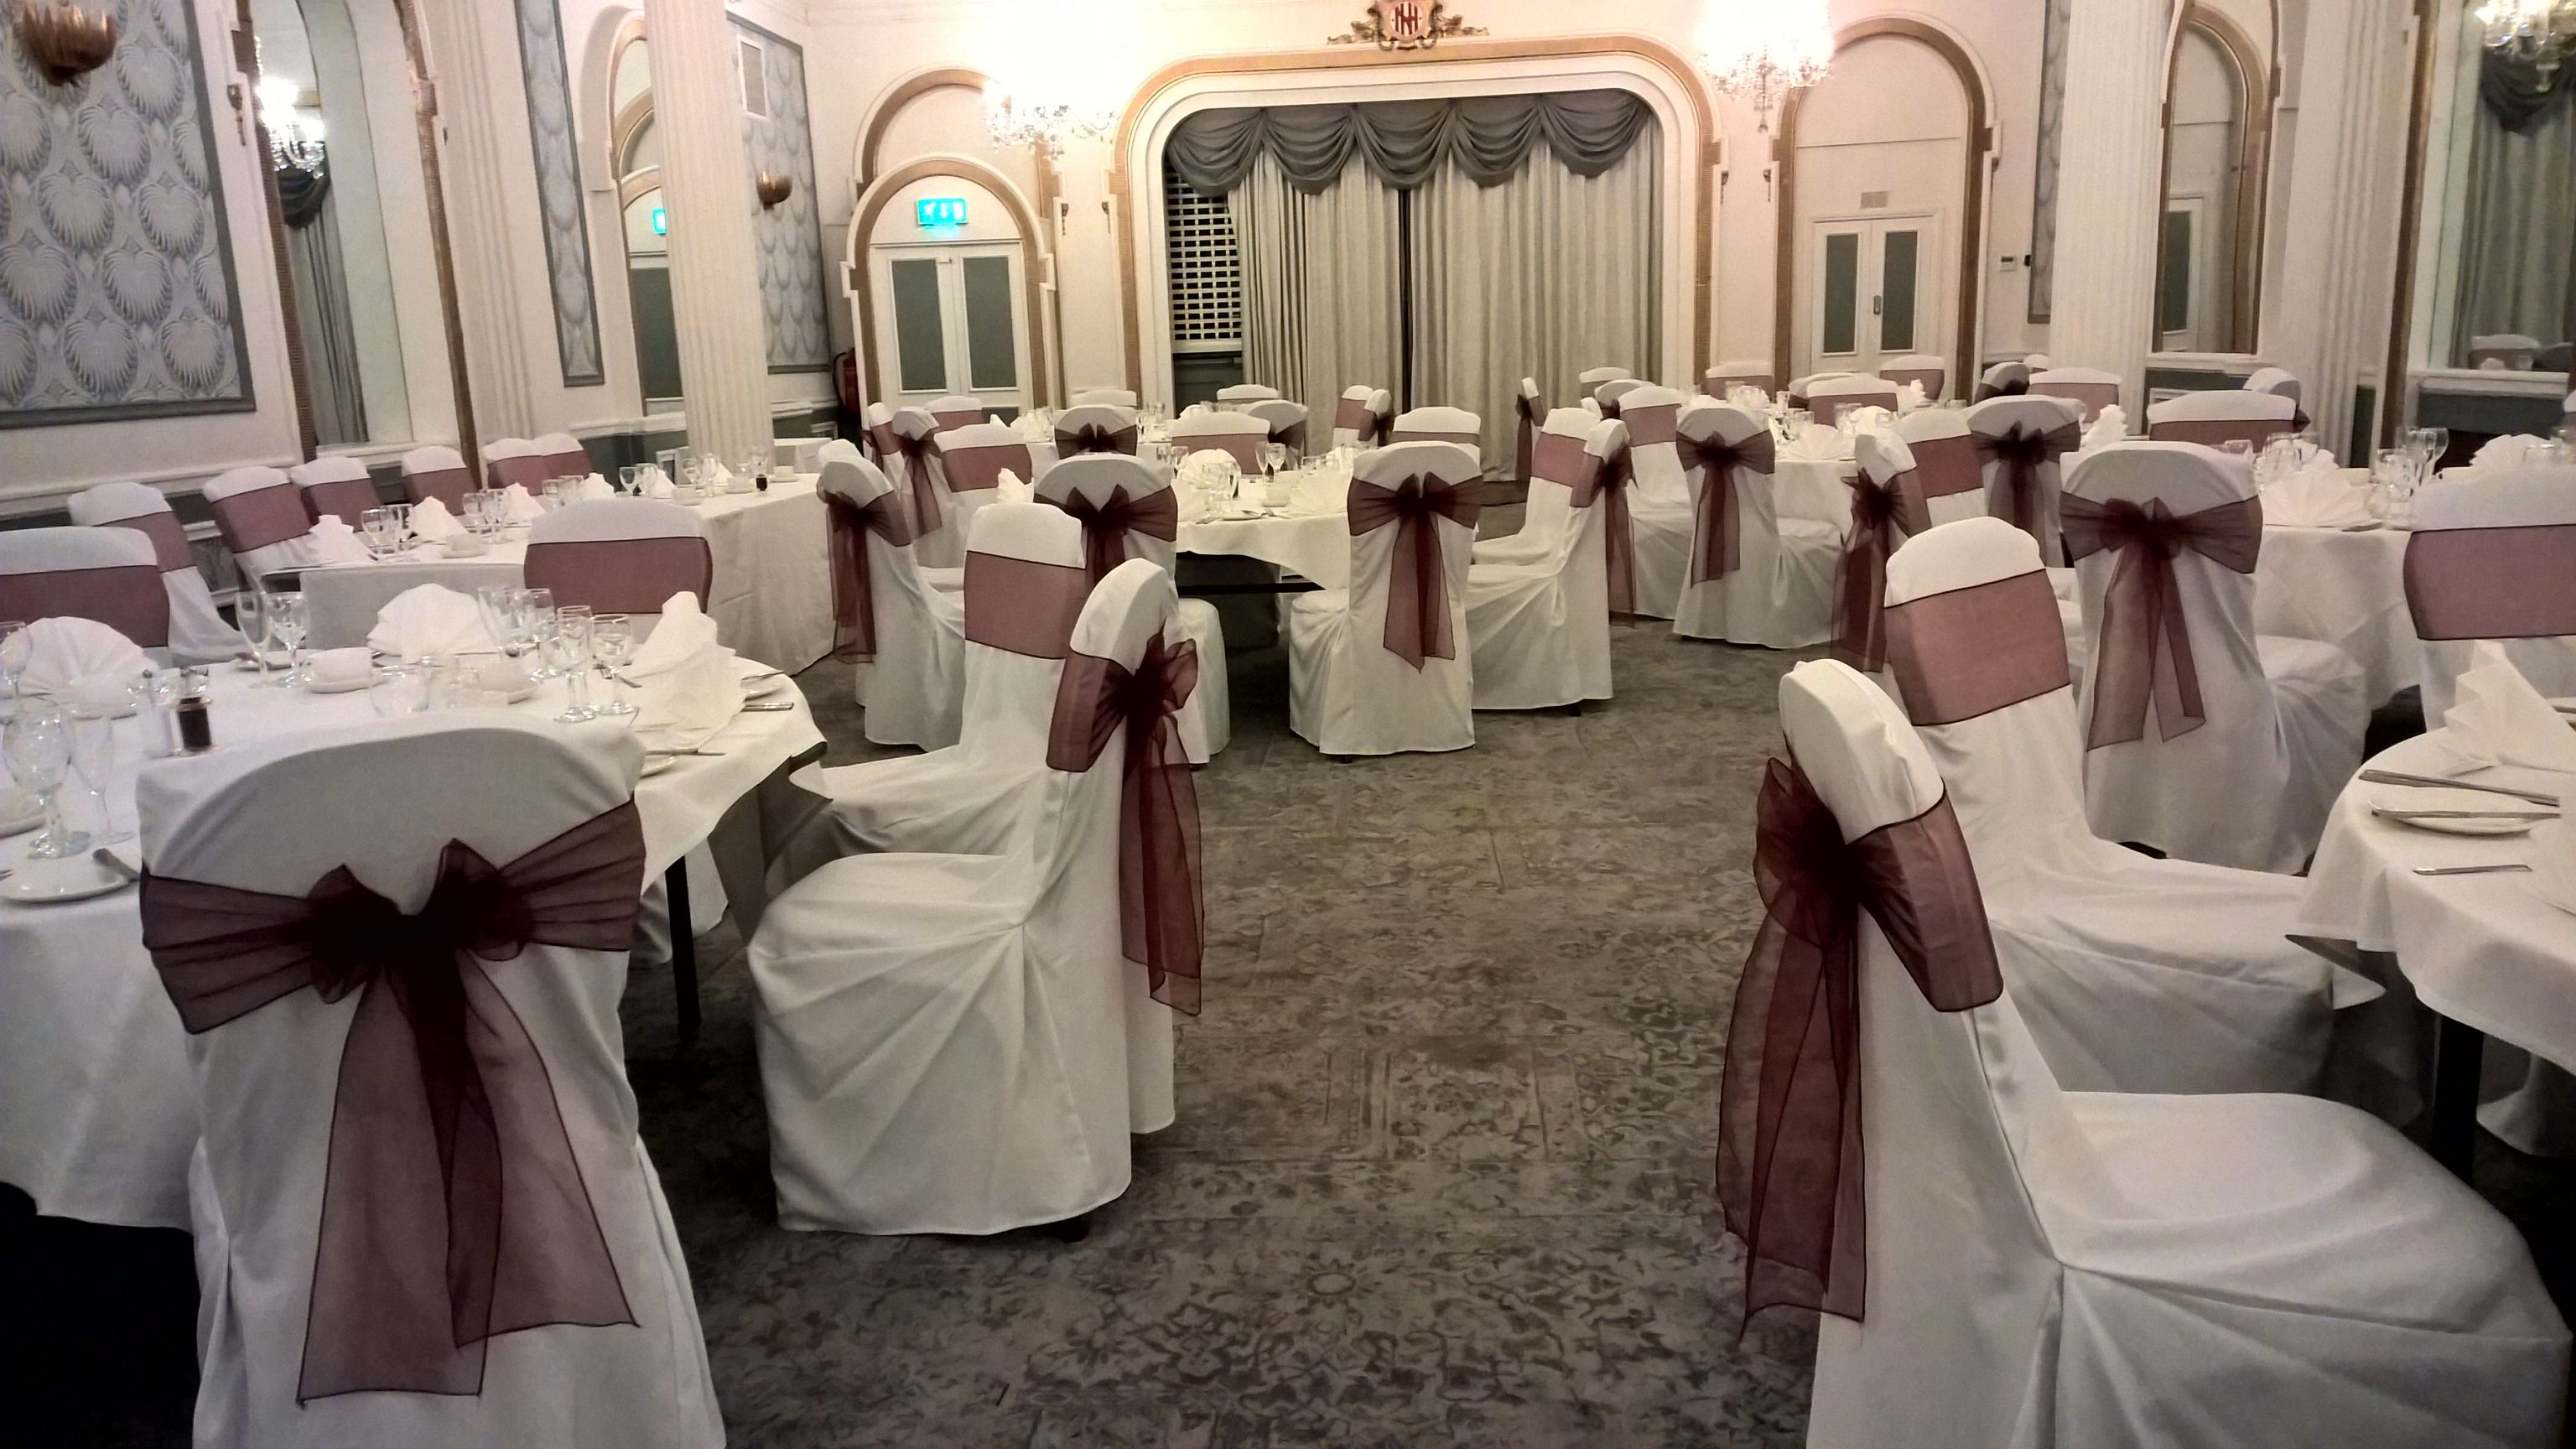 wedding chair covers eastbourne heart shaped white with buegandy organza sashs brightonchaircovers brightonweddingdecor dazzlingdecor